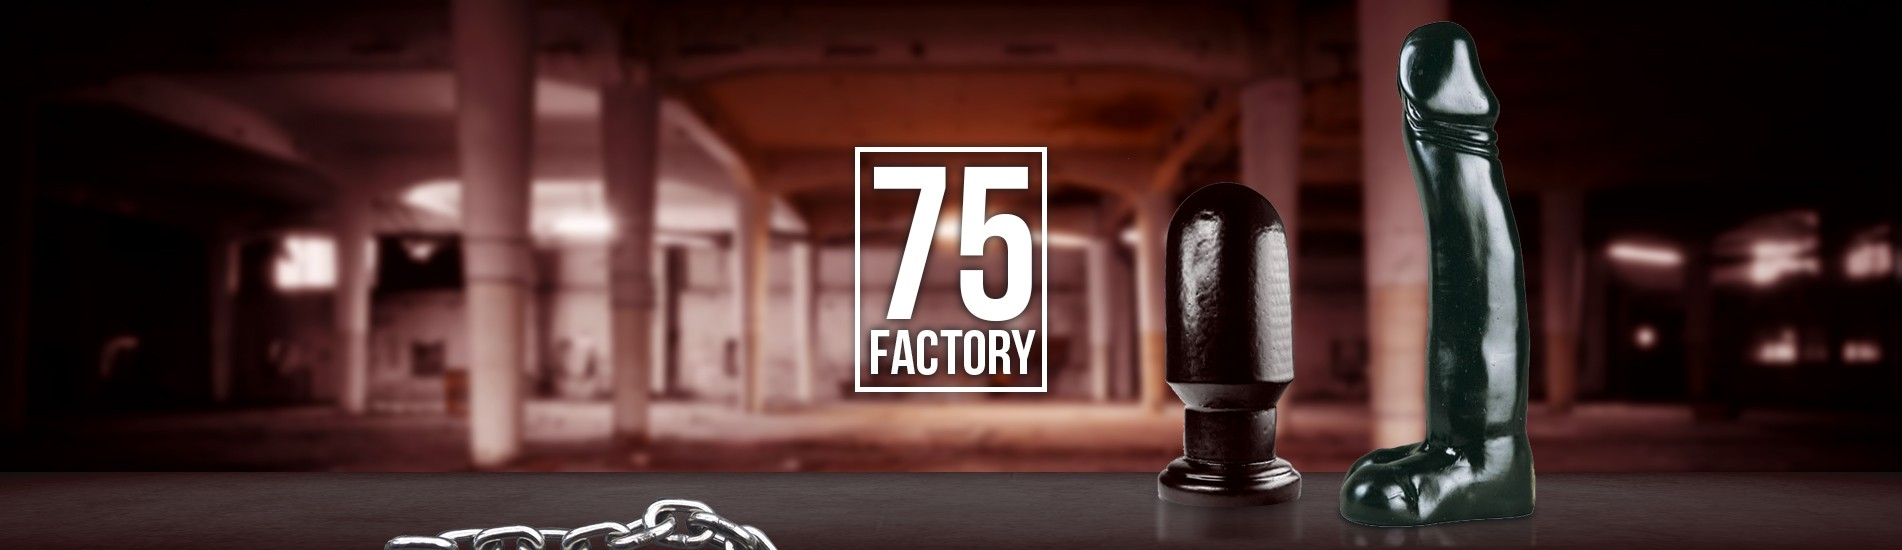 75FACTORY